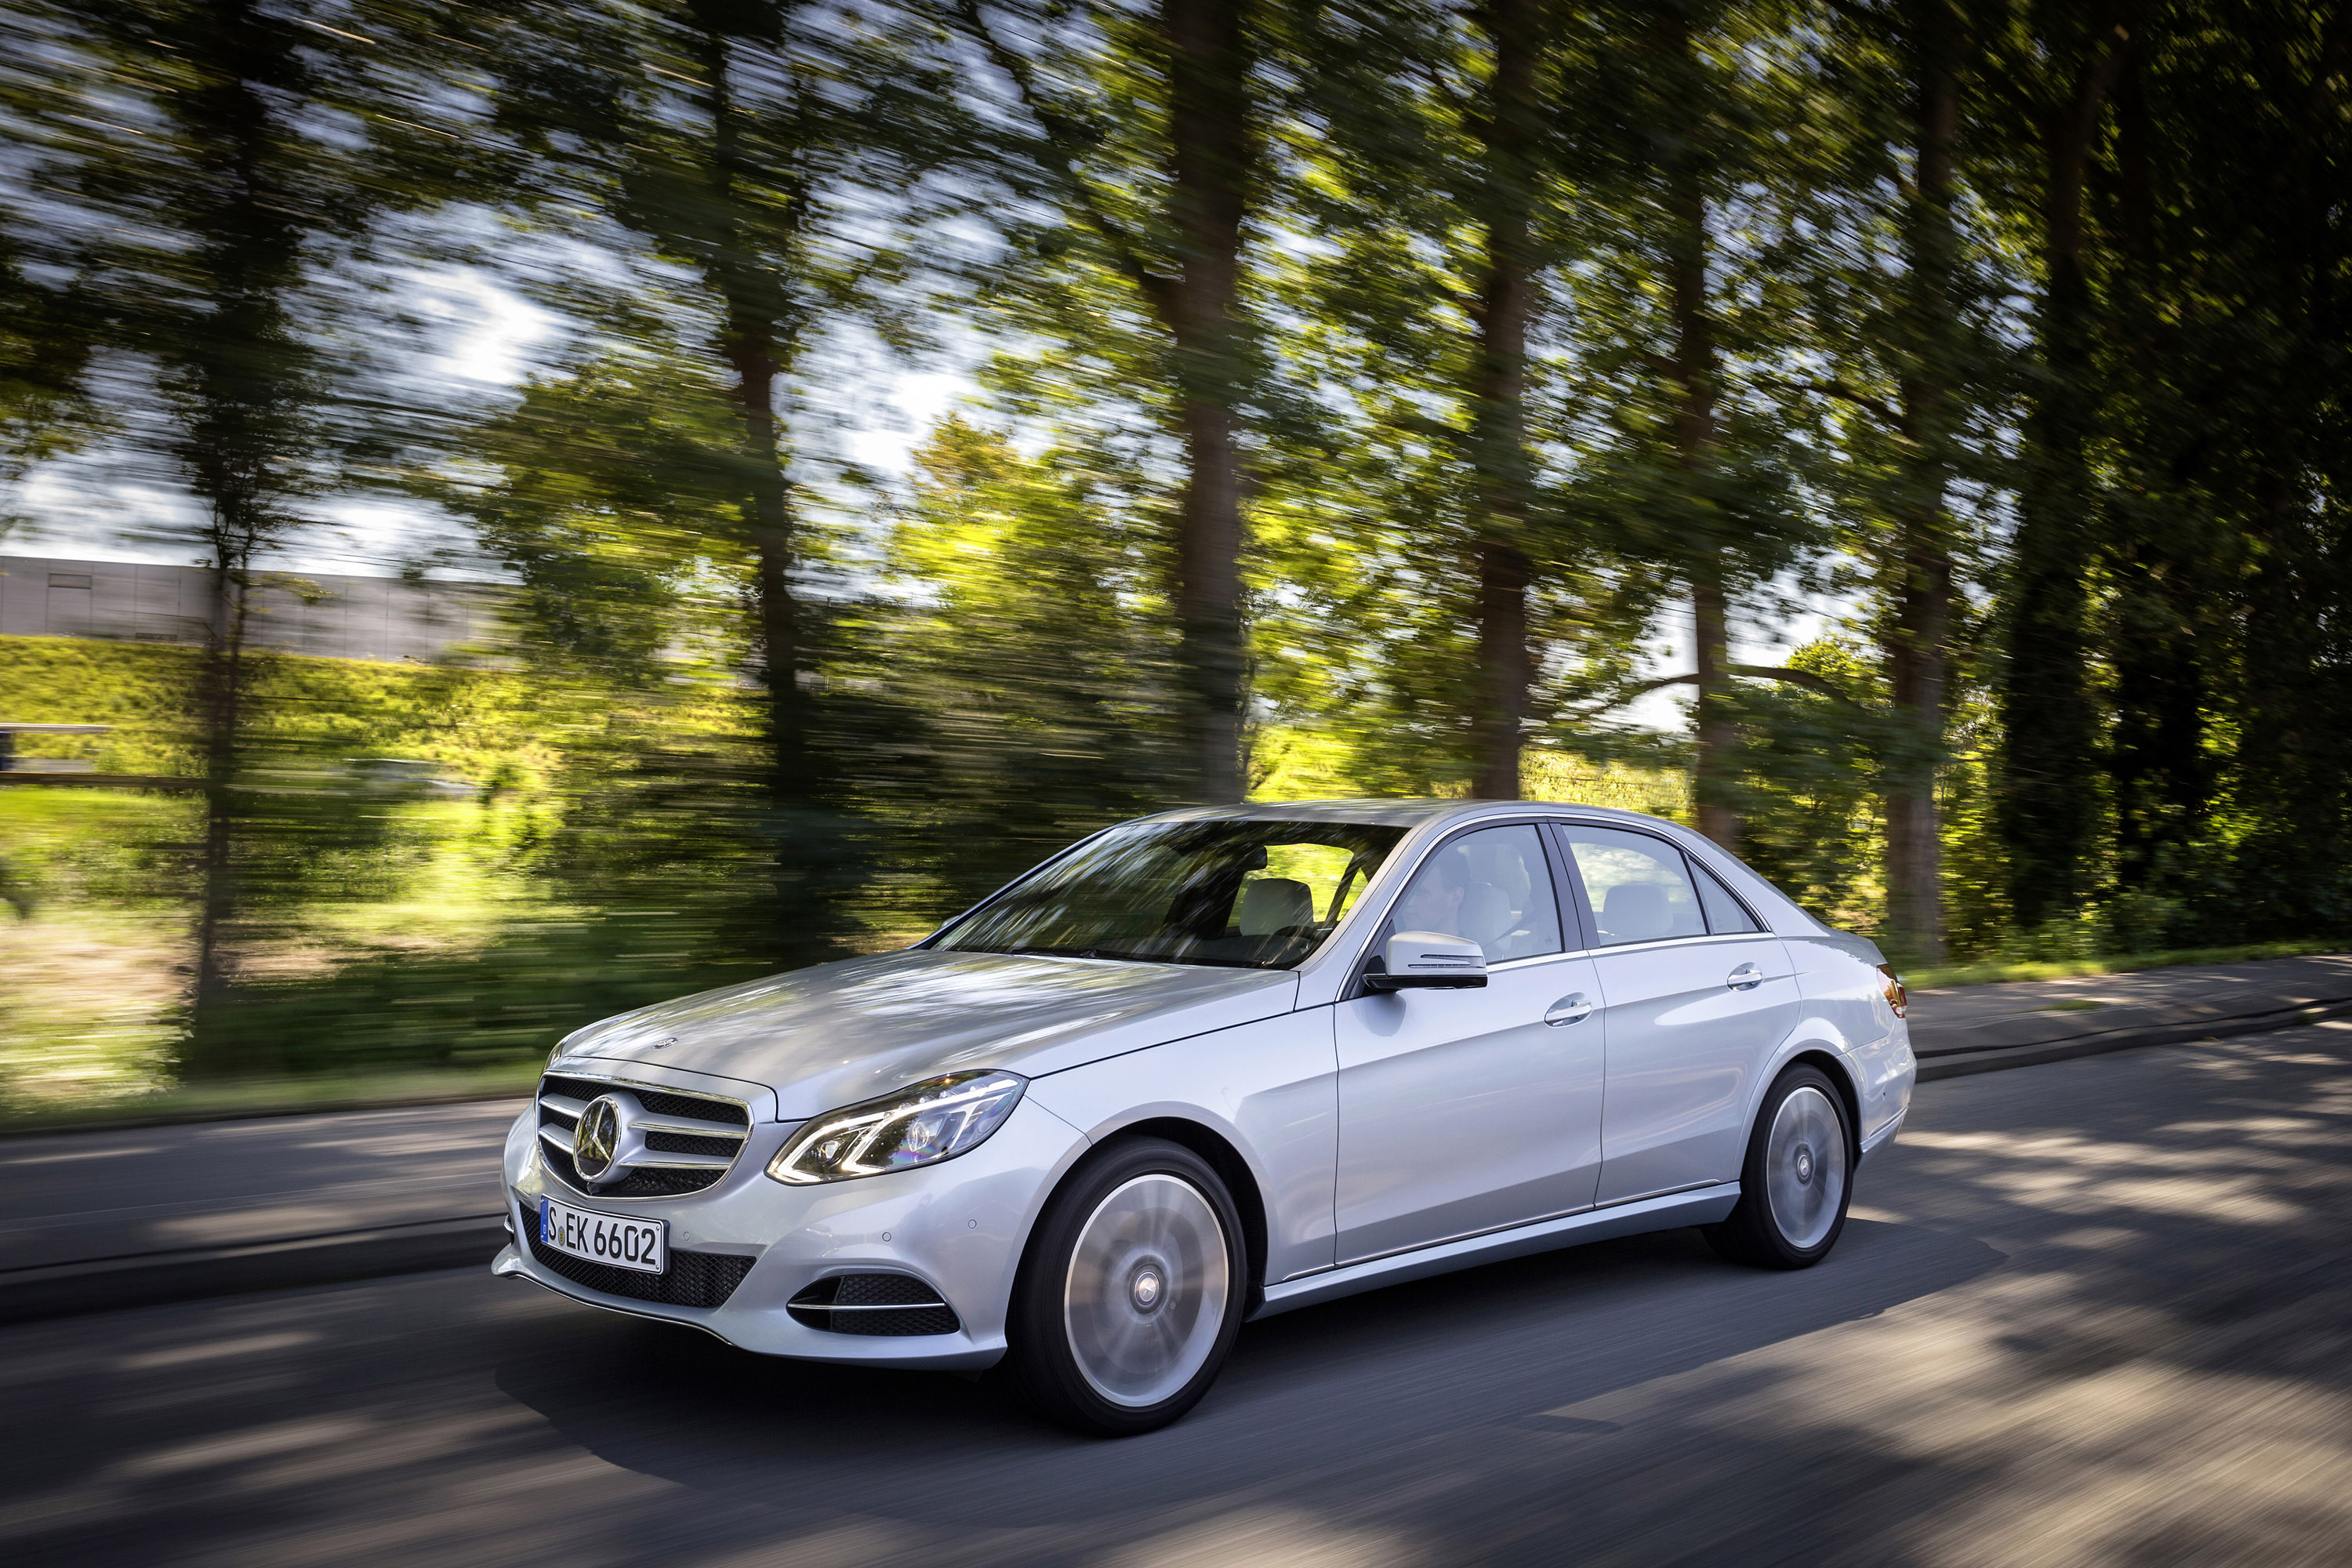 Mercedes-benz e220 photo - 6